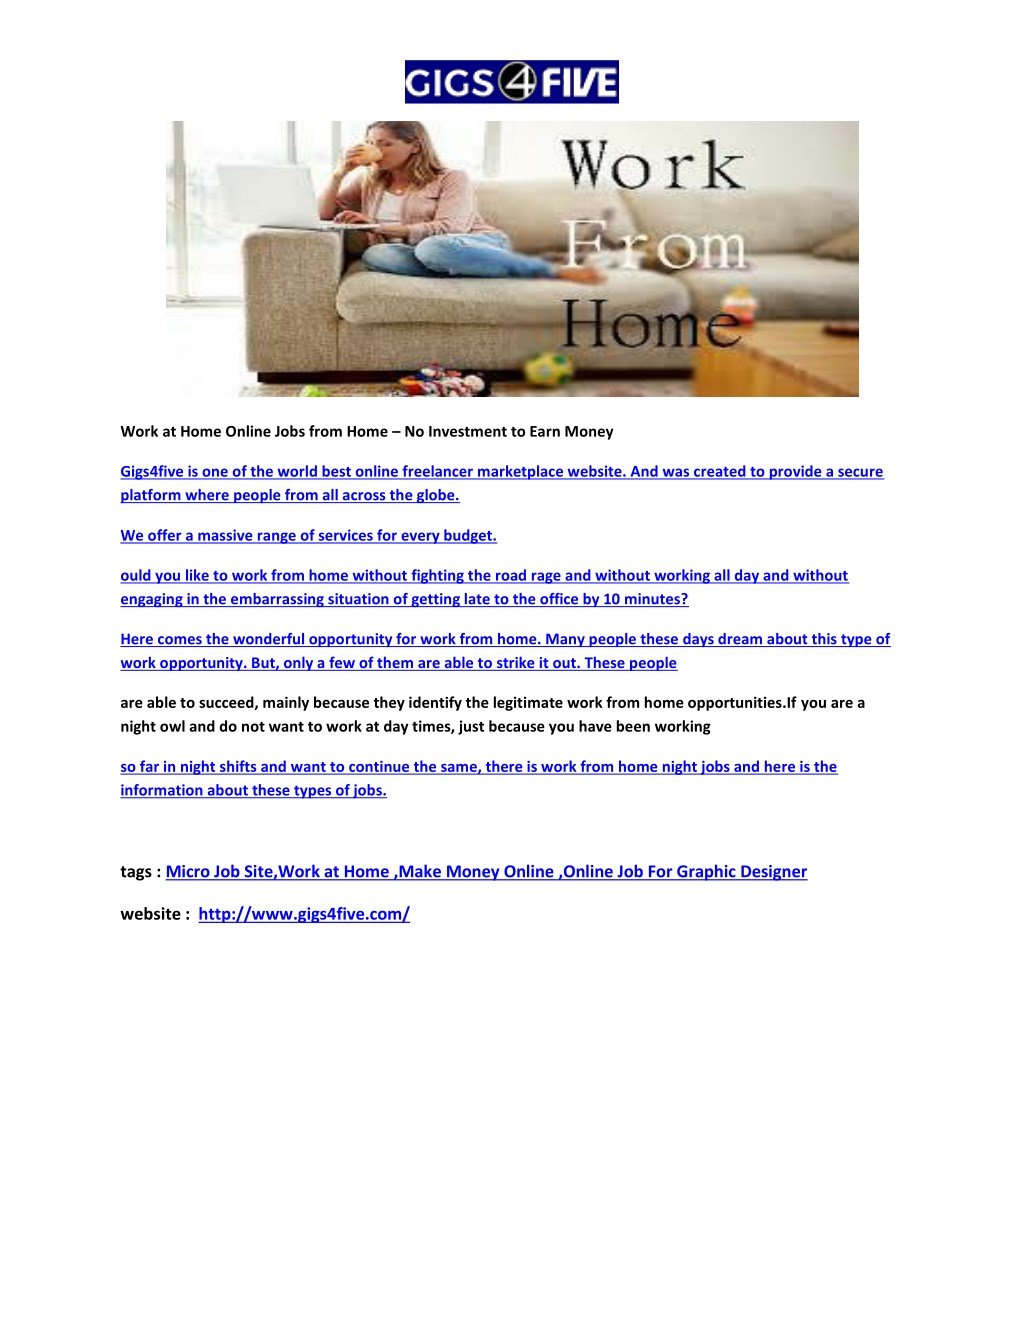 PPT - Work at Home | Online Jobs from Home – No Investment